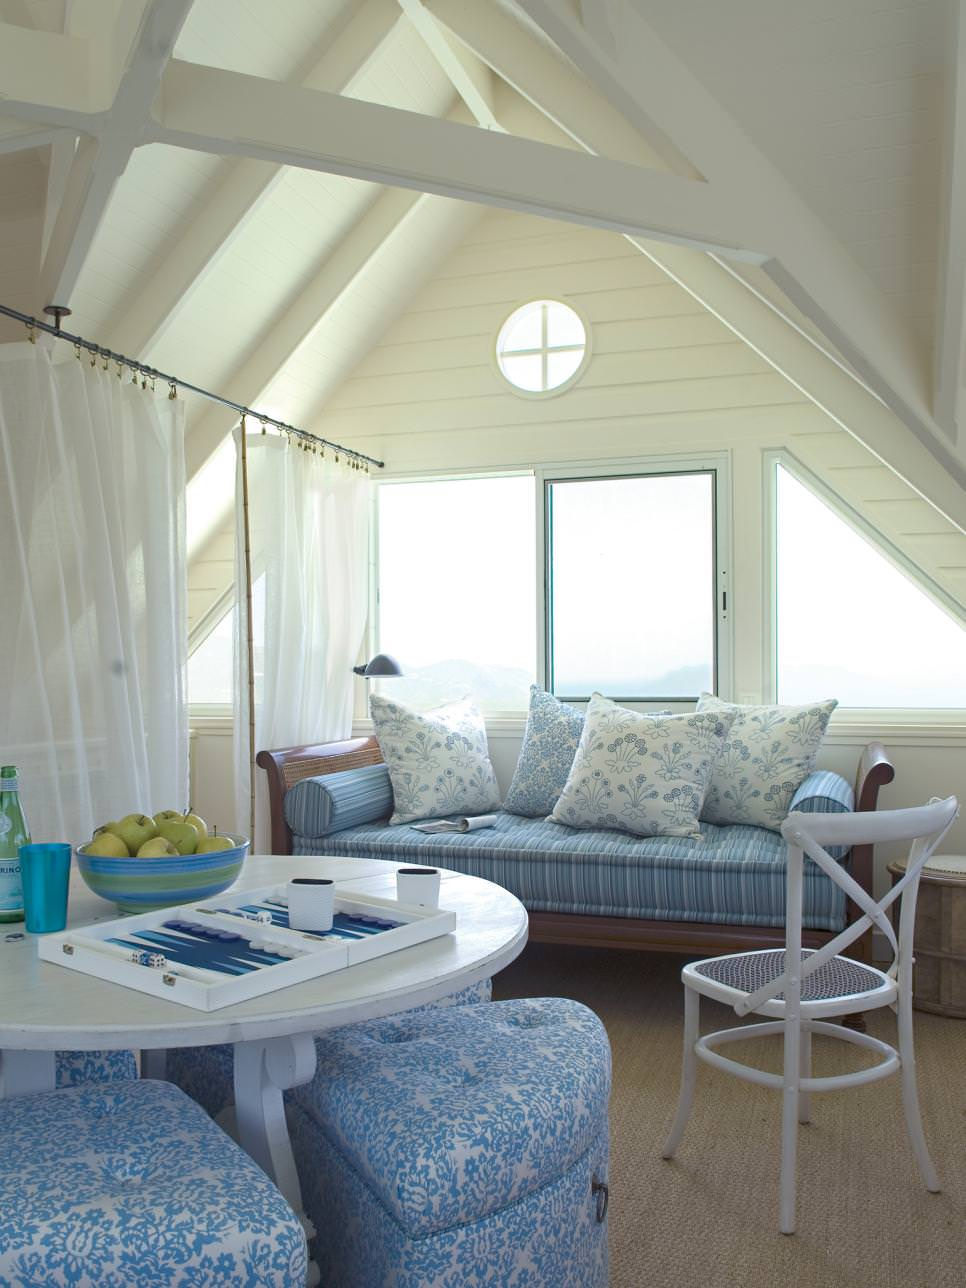 23 Decorated Attic Home Designs Decorating Ideas